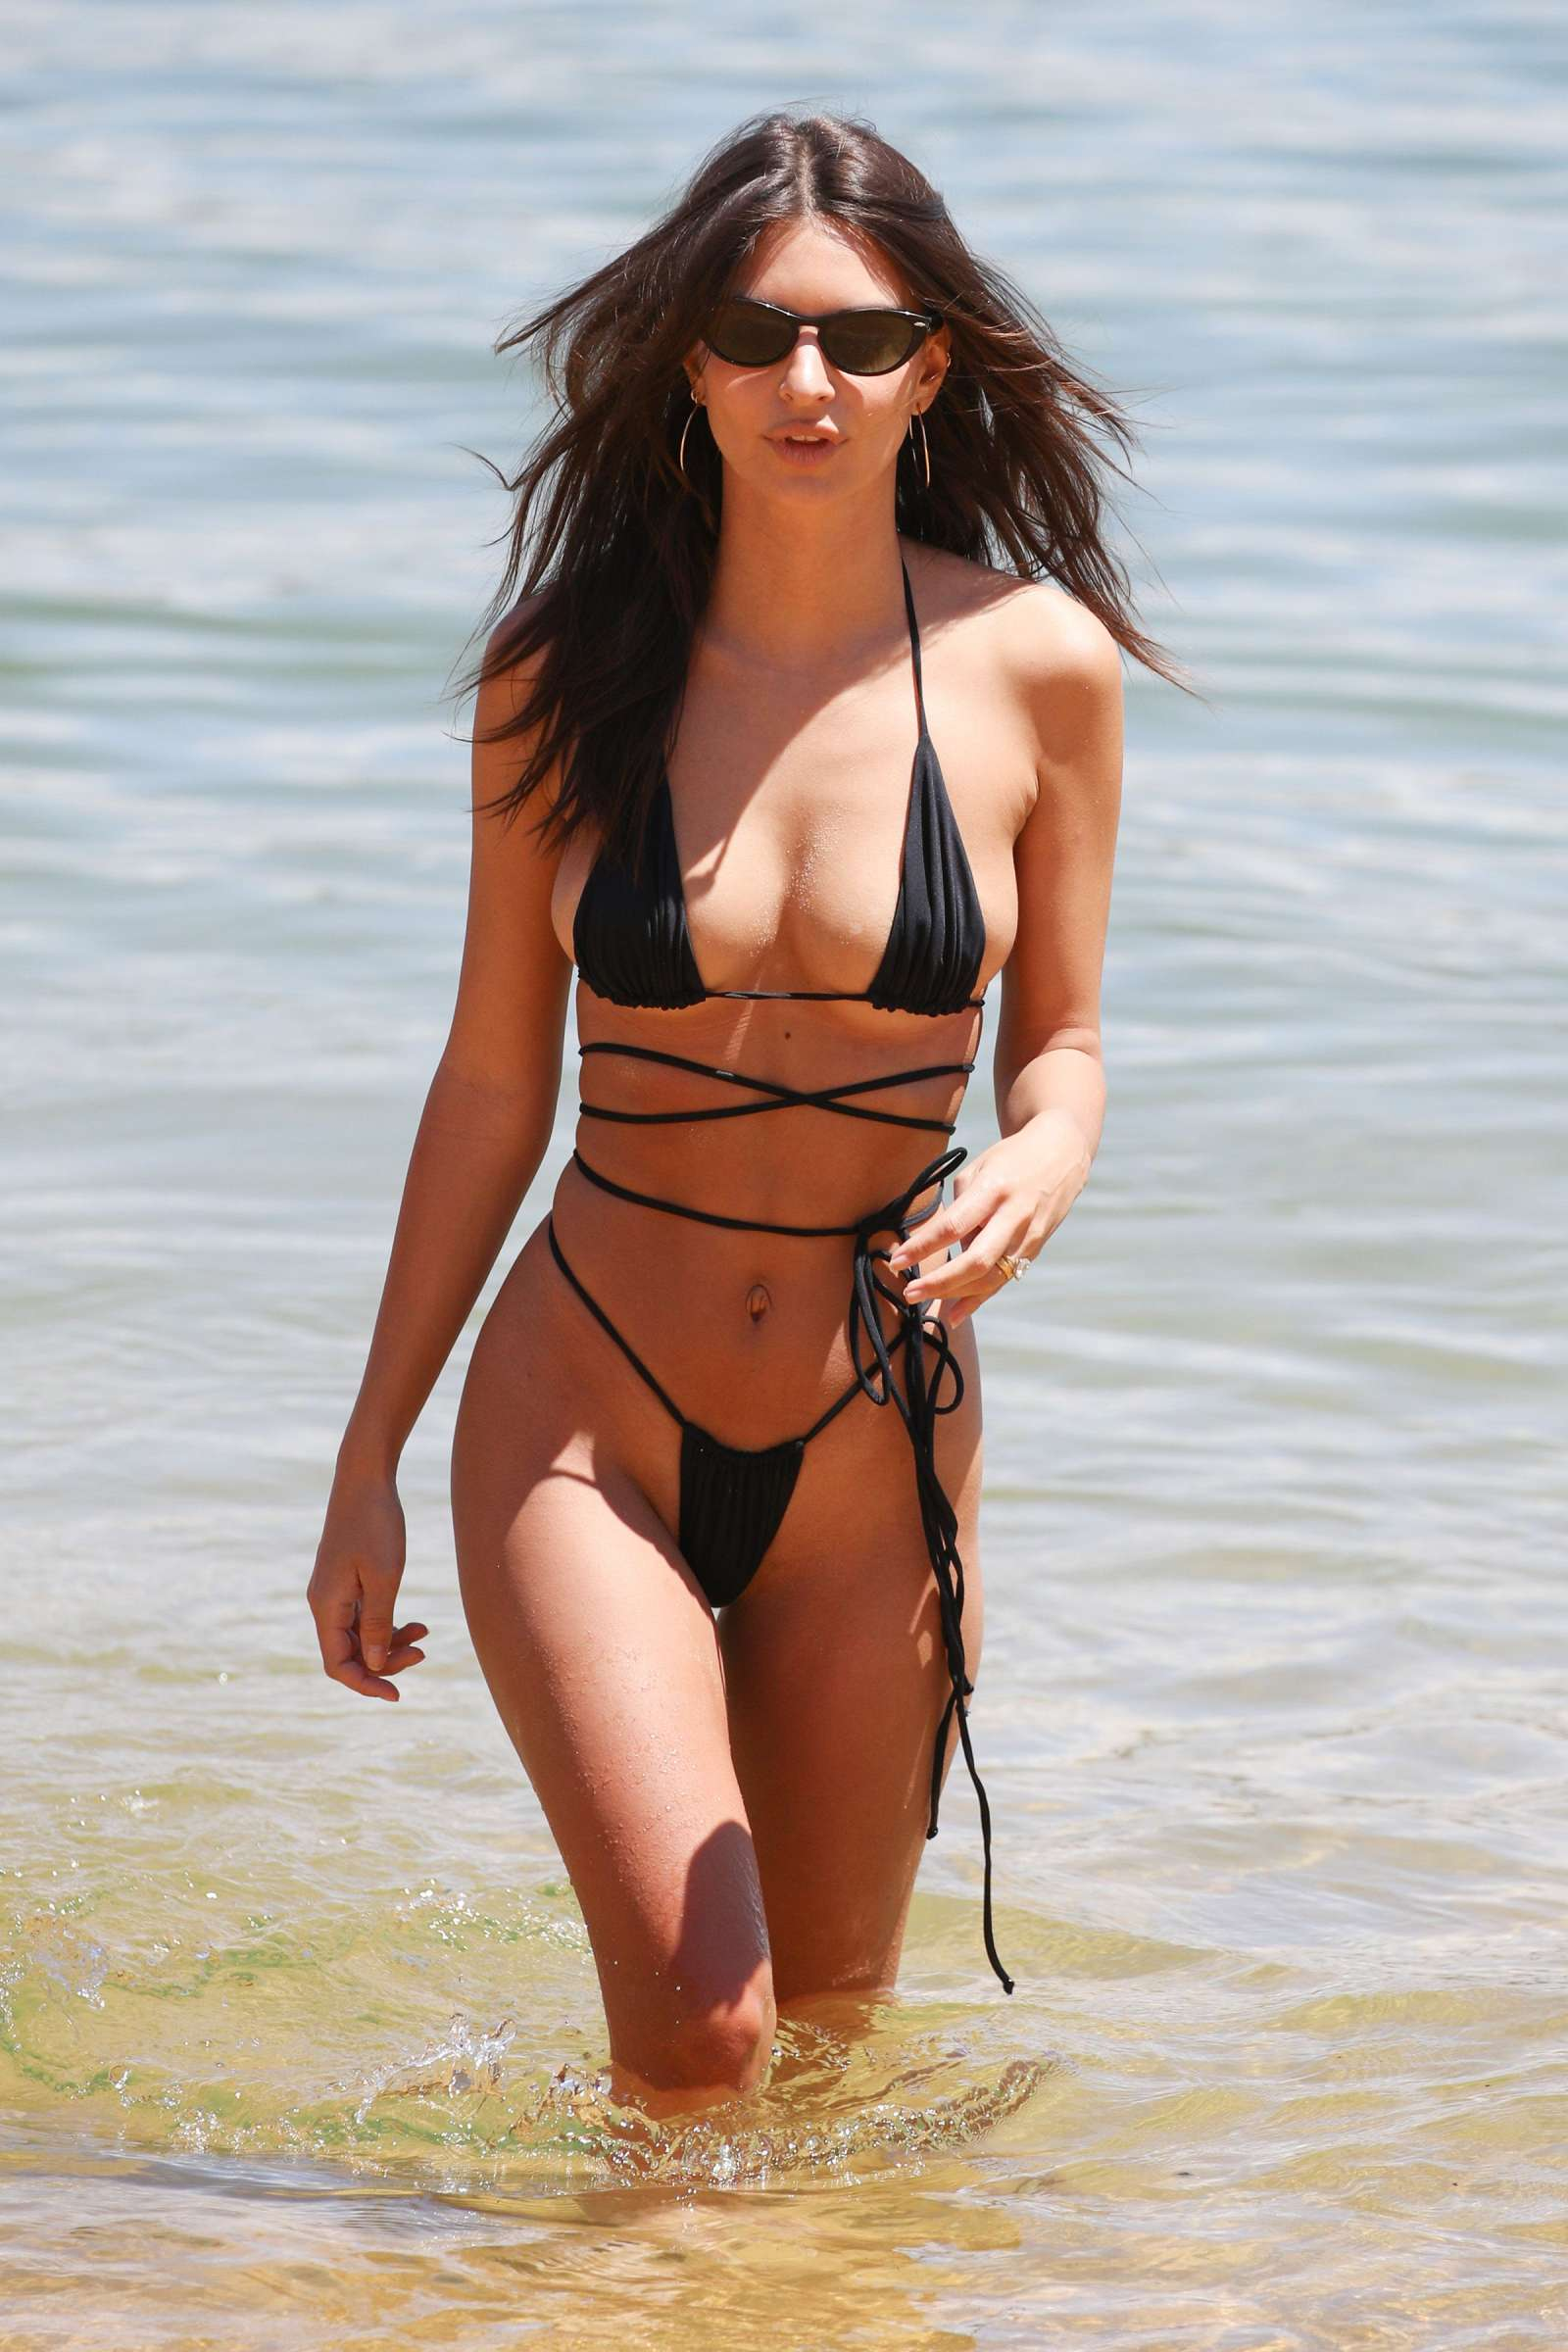 Emily Ratajkowski in Black Bikini on the beach in Gold Coast